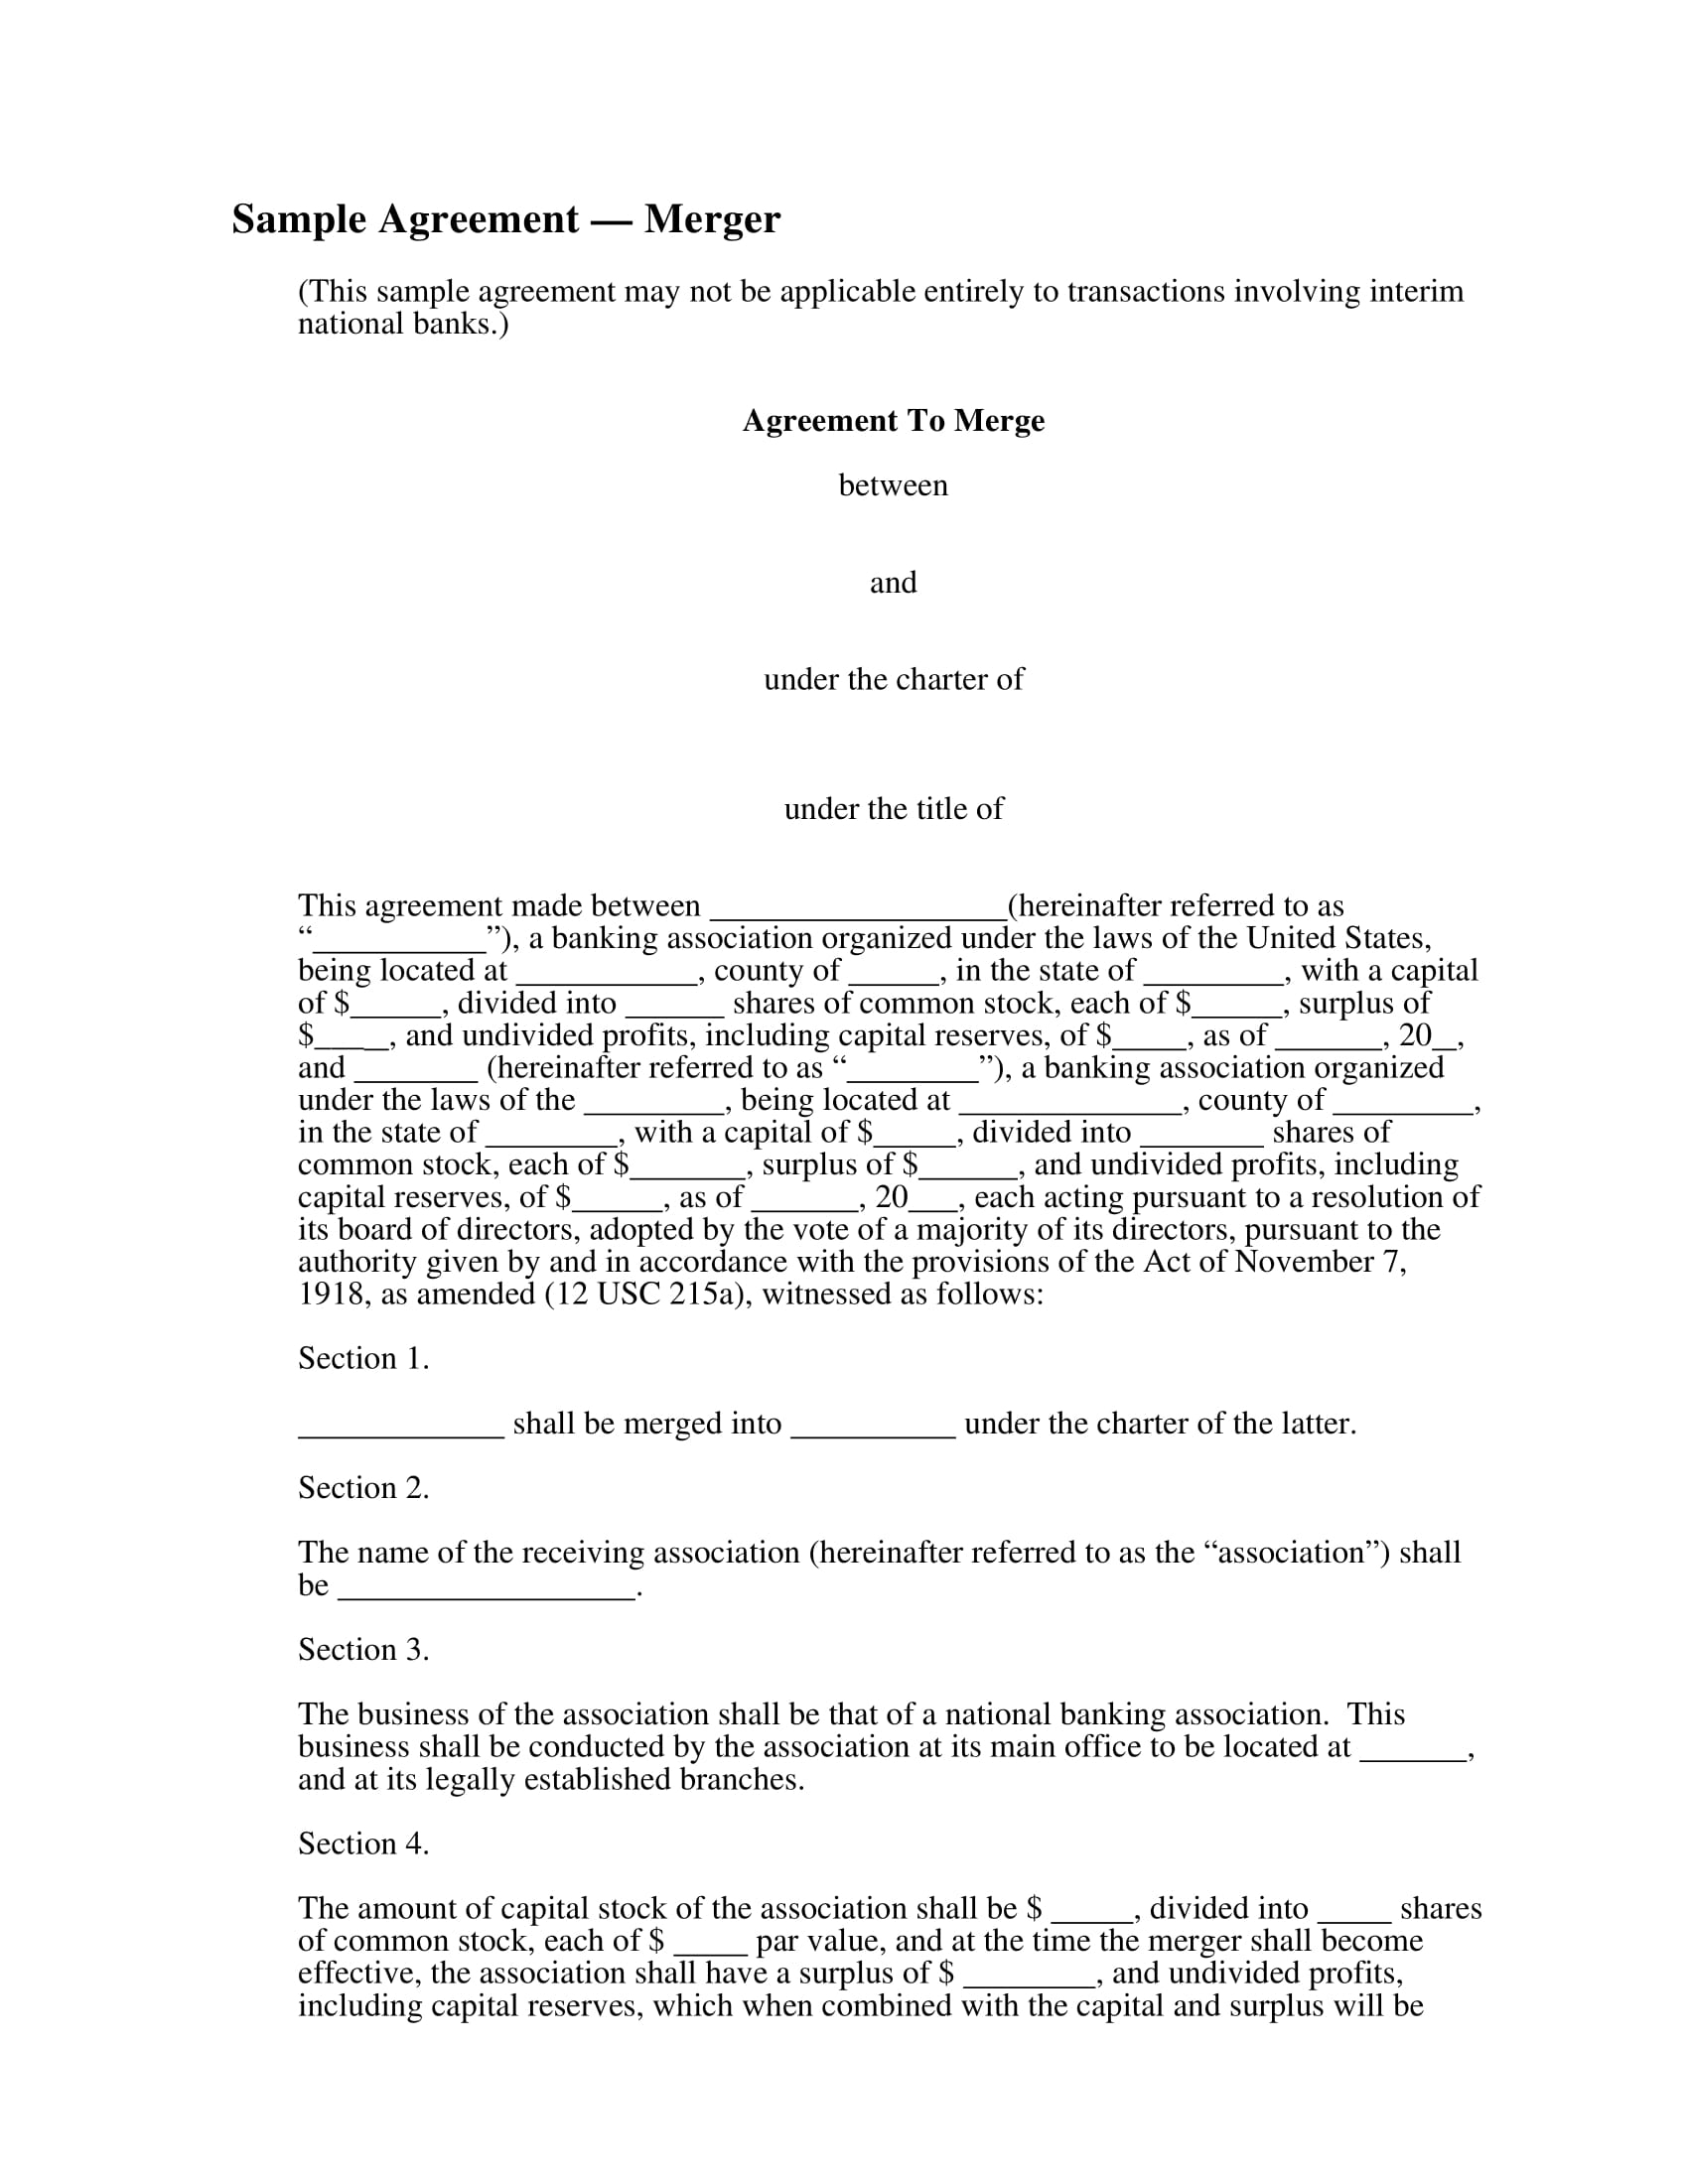 merger agreement contract form sample 1